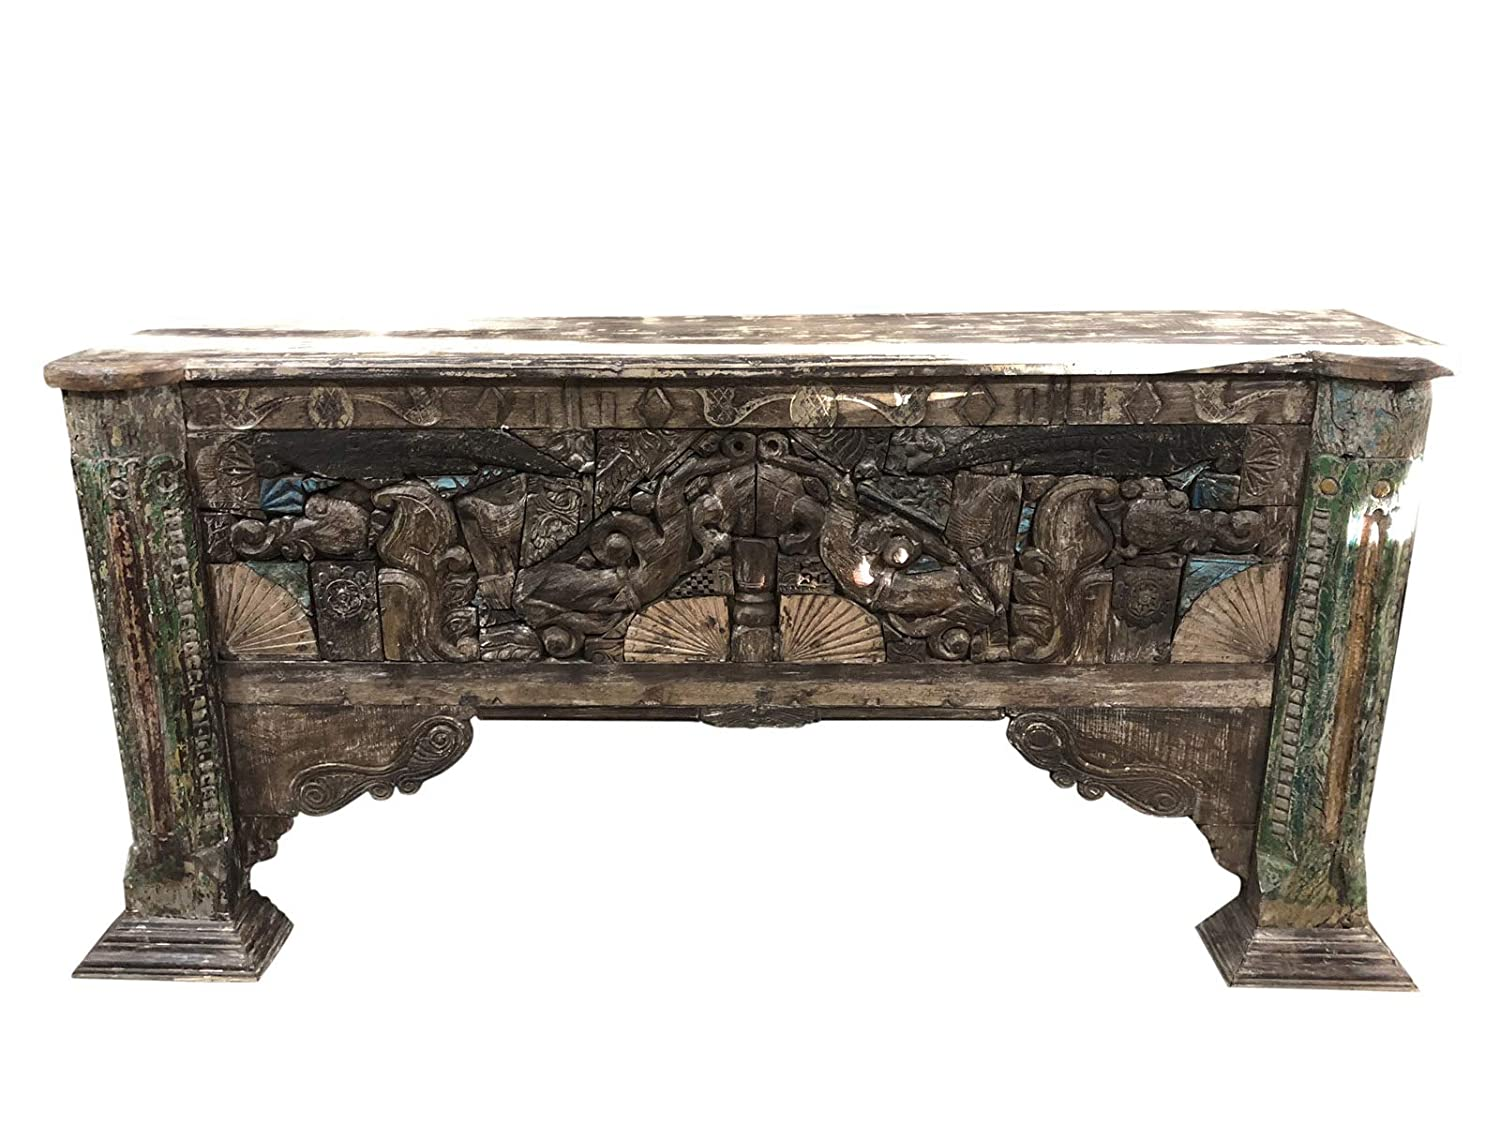 Amazon com mogul interior rustic sofa console table carved deep relief wood bohemian reclaimed vintage furniture kitchen dining